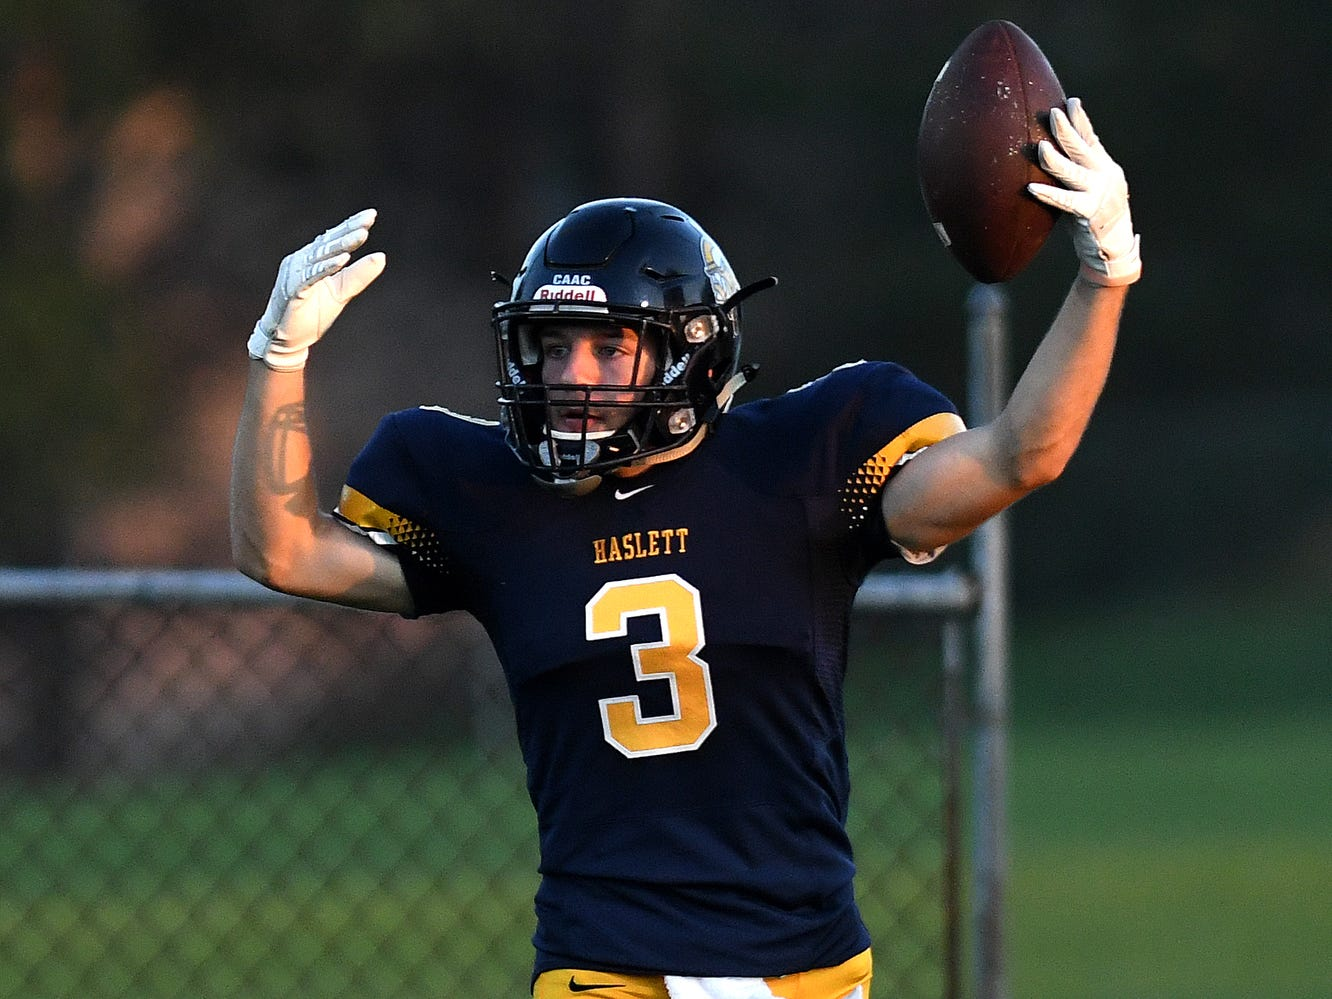 Haslett's Logan Cross celebrates his touchdown during the second quarter on Friday, Sept. 14, 2018, at Haslett High School.